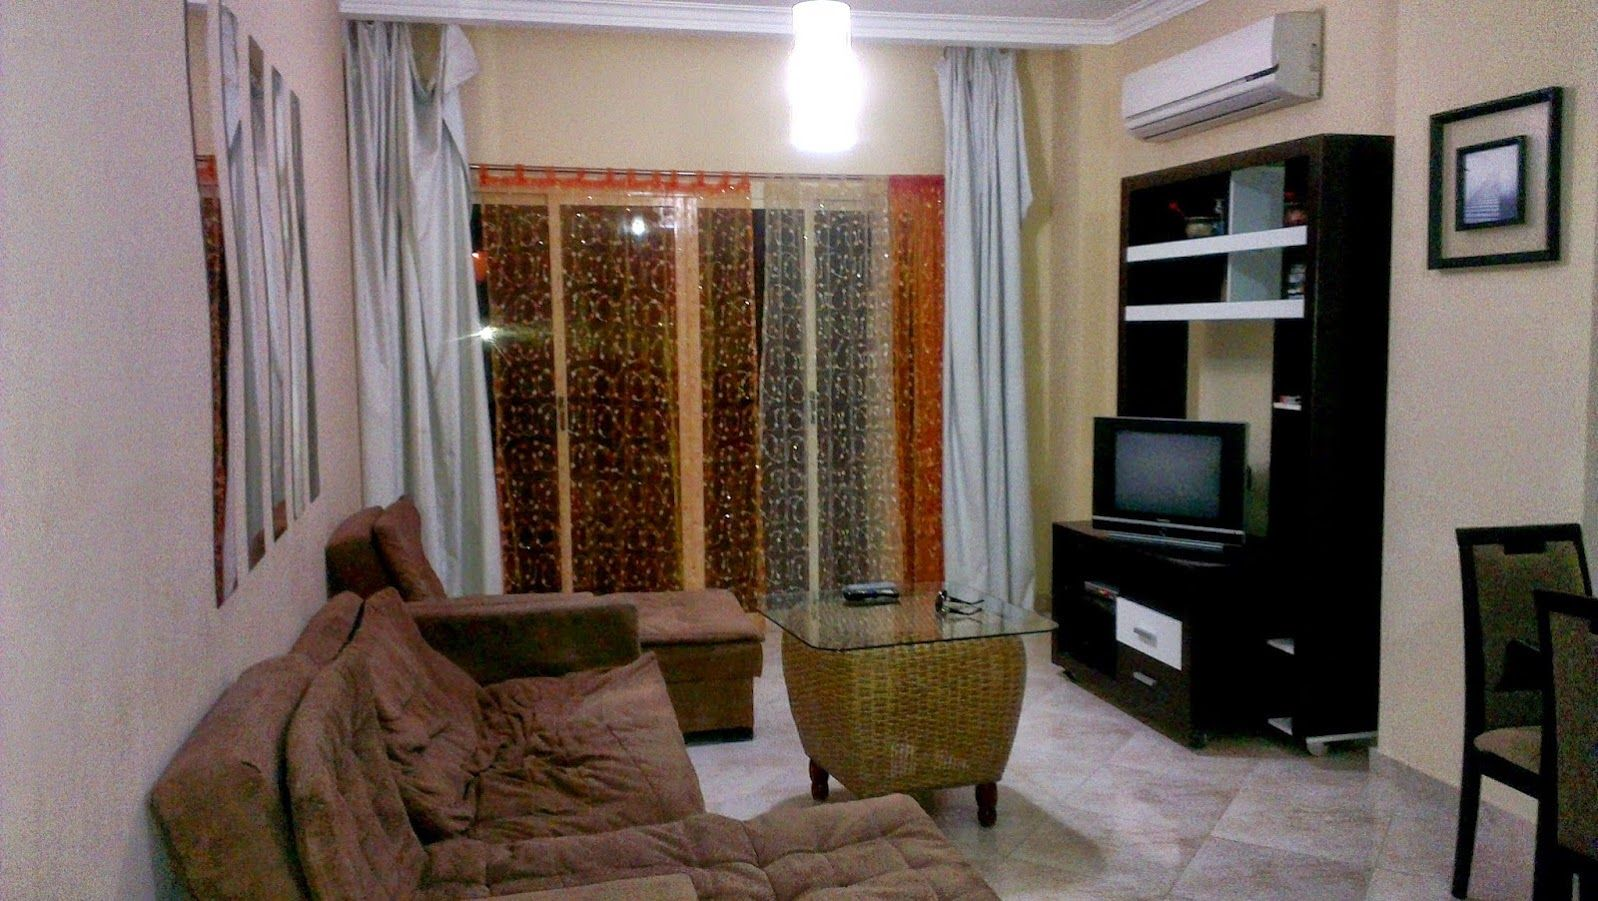 1 Bedroom Apartment For Rent In Hurghada Fully Furnished Open Plan Kitchen Bathroom With Shower 1 Bedroom Apartment One Bedroom Apartment Apartments For Rent